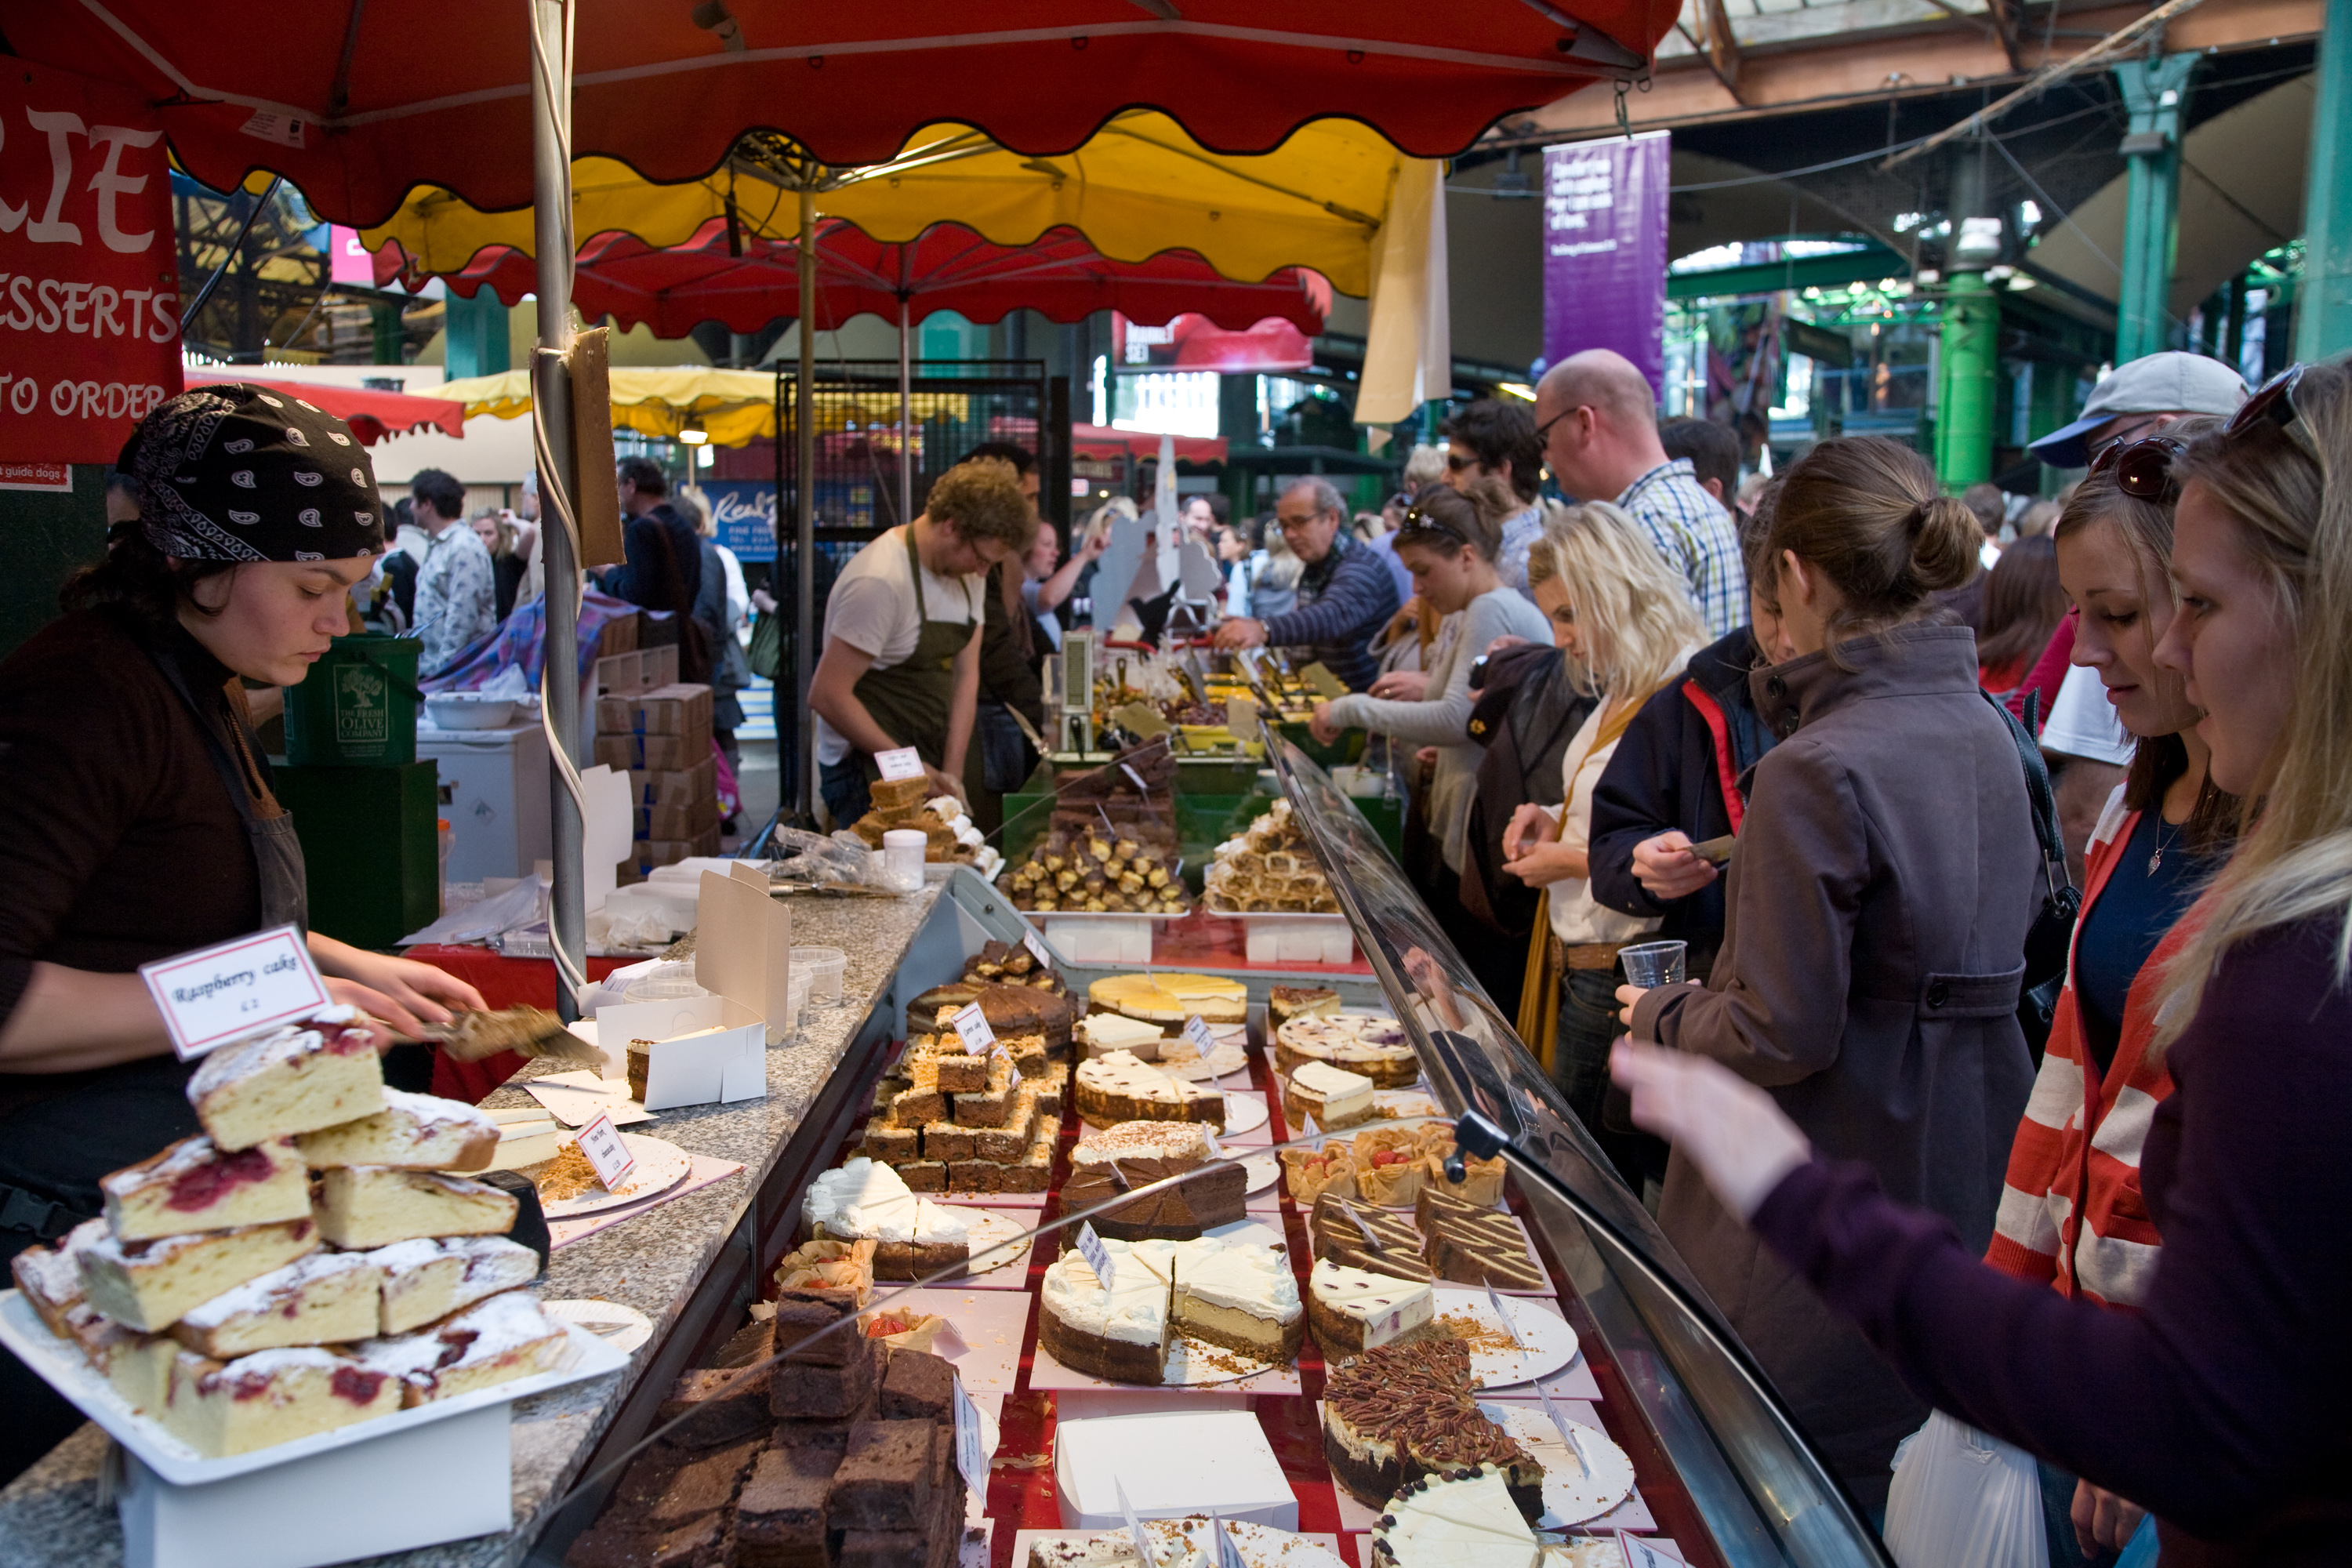 File:Borough Market cake stall, London, England - Oct 2008.jpg ...